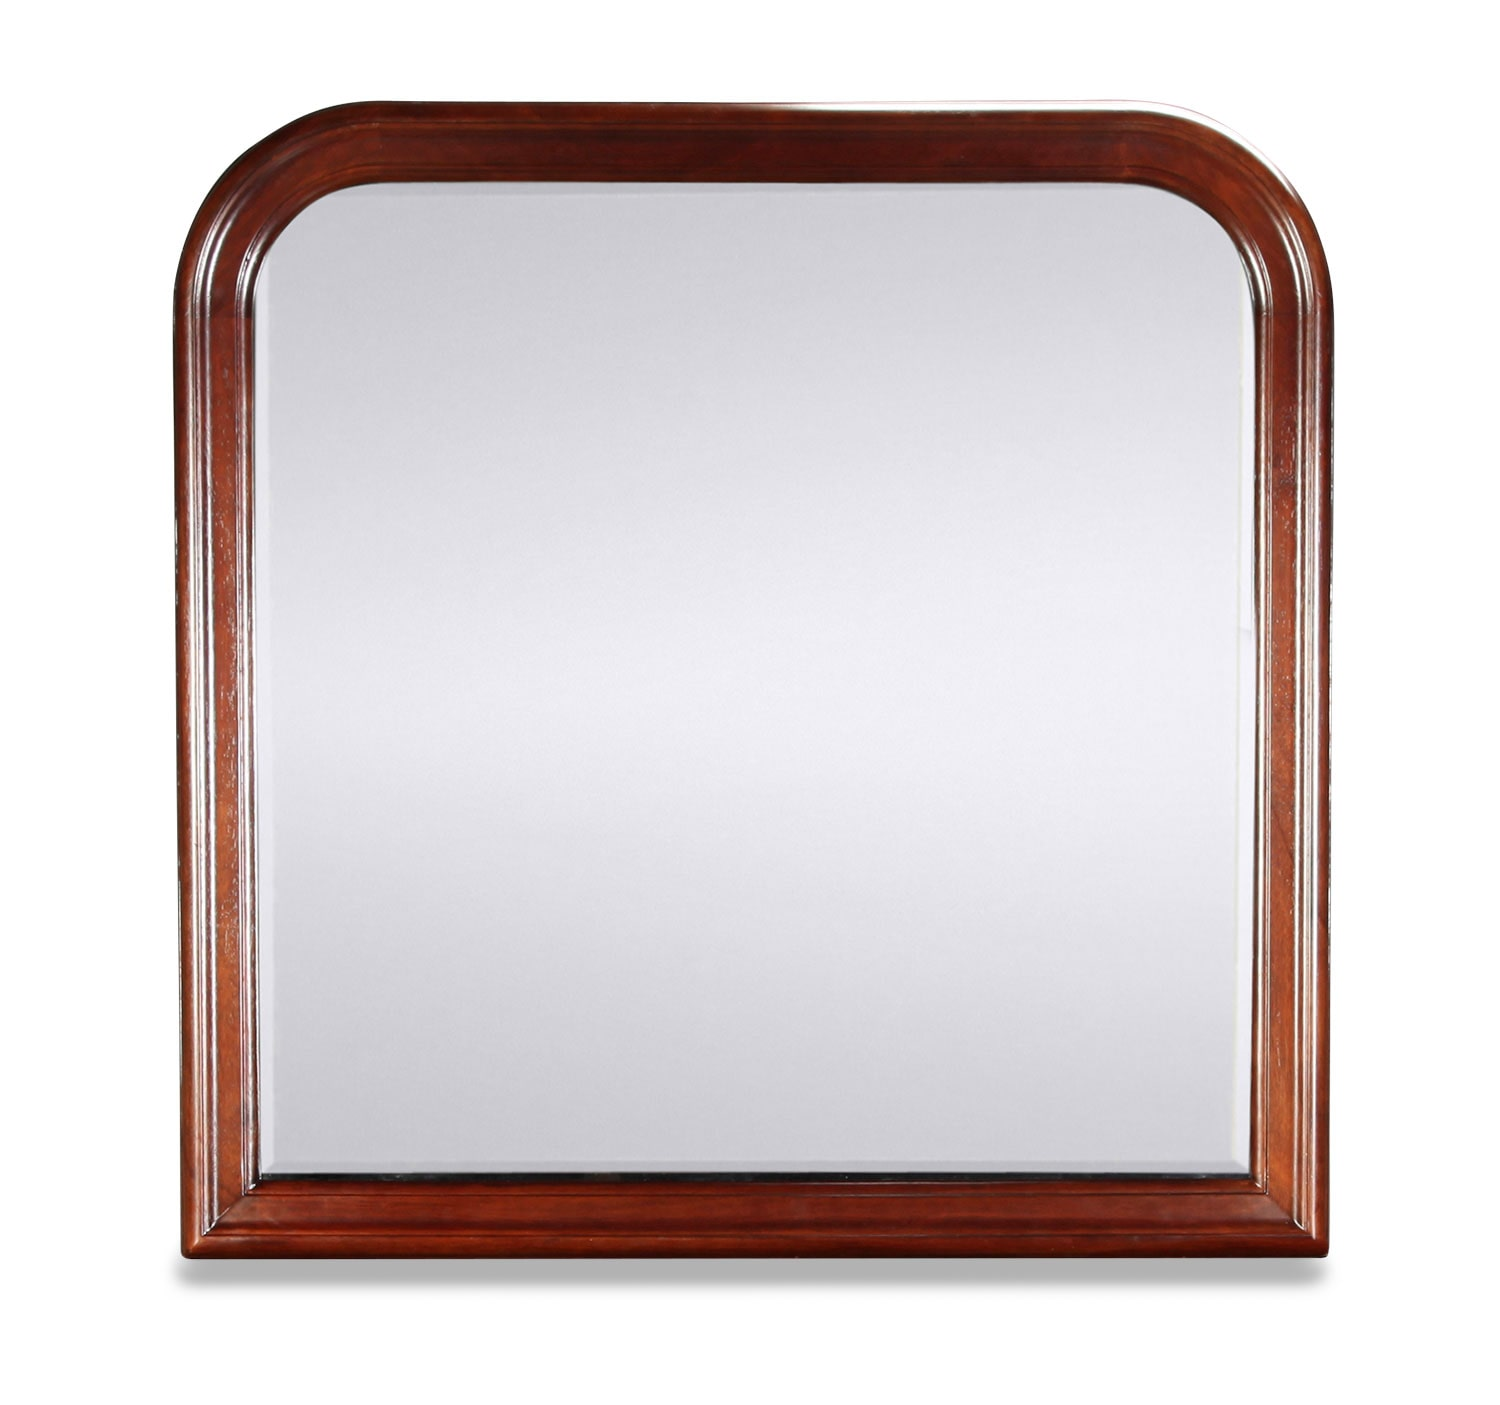 Bedroom Furniture - Claire Mirror - Brown Cherry